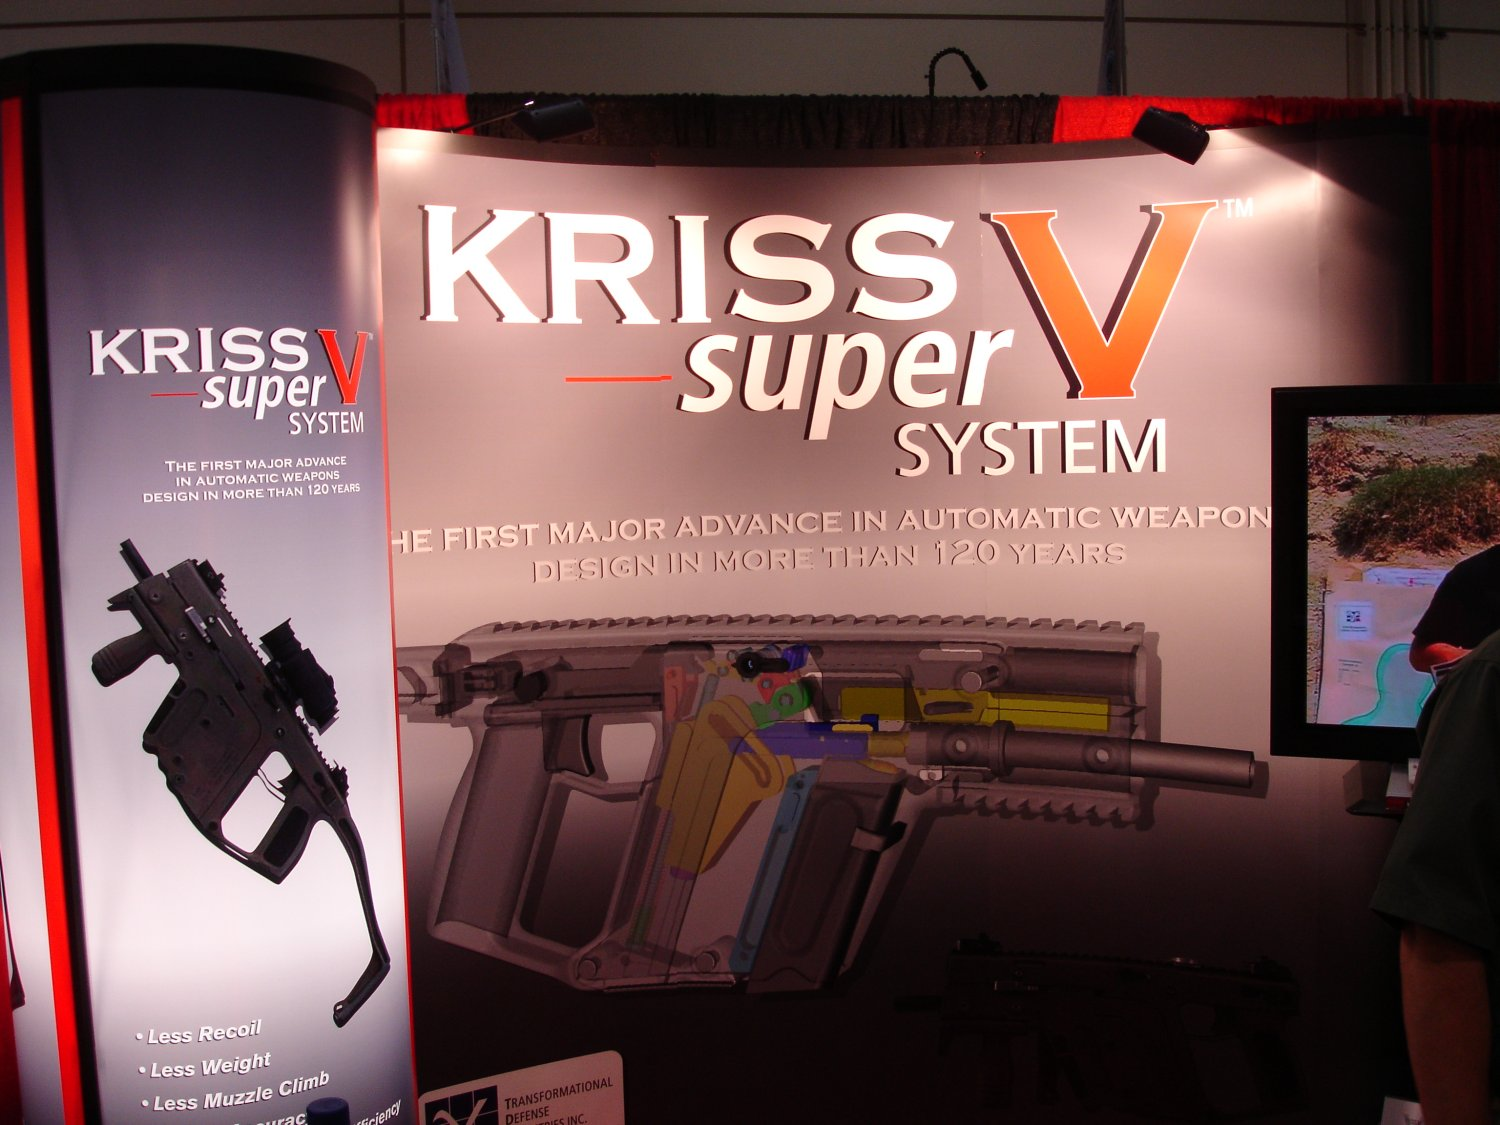 SHOT%20Show%202007%20 %20KRISS%20Super%20V%20System%20Submachine%20Gun%20%28.45%20ACP%29 7 <!  :en  >KRISS Super V XSMG System .45 ACP Submachine Gun: Photos of Latest Prototypes<!  :  >